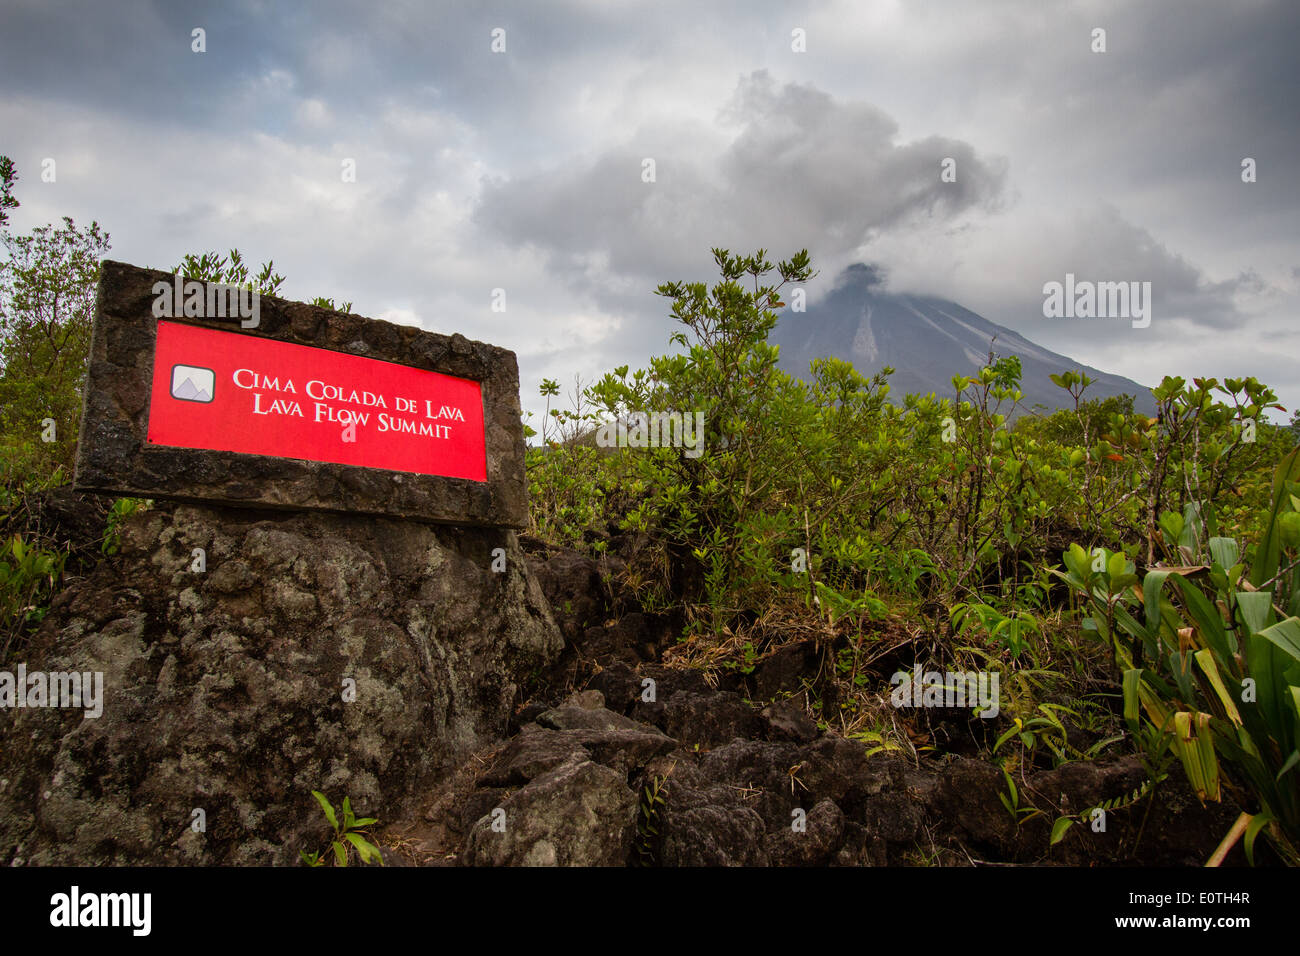 Arenal volcano from the 1968 eruption lava flow - summit marker sign - Costa Rica - Stock Image